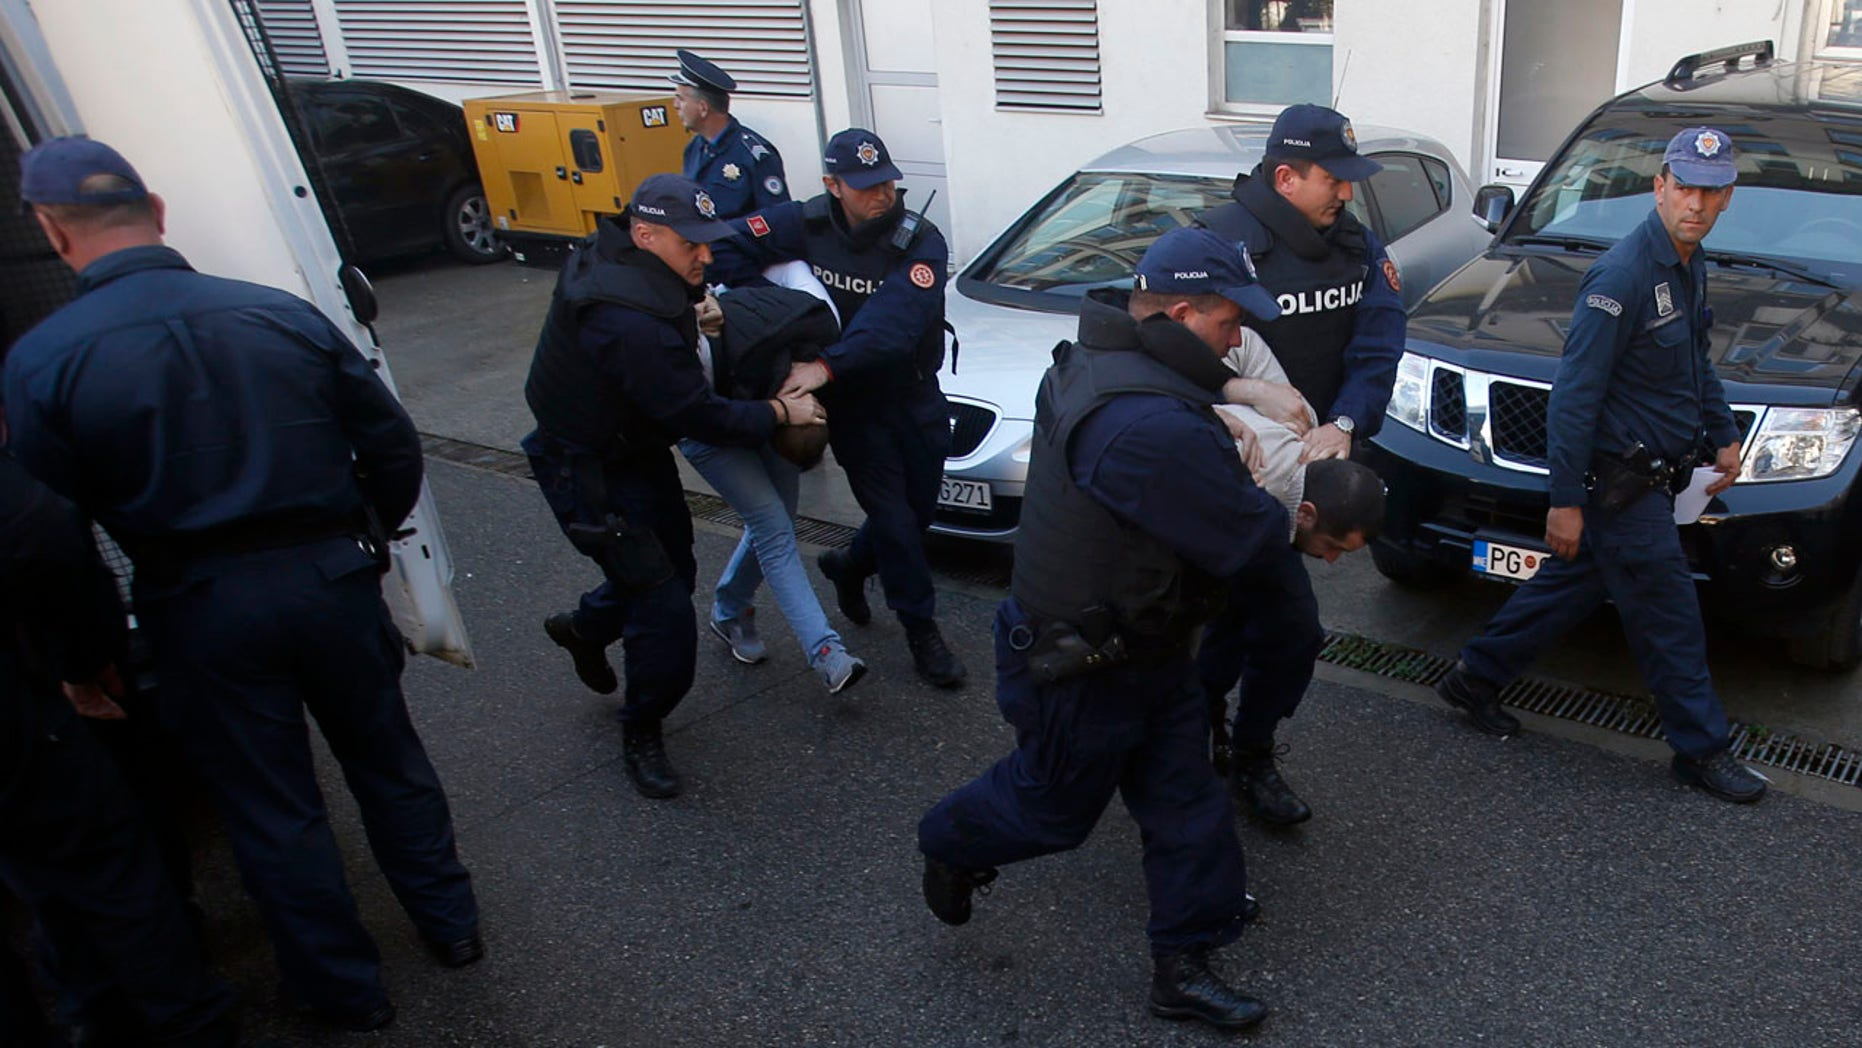 Oct. 16, 2016: Montenegrin police officers escort people suspected of planning armed attacks after the parliamentary vote in Podgorica, Montenegro.